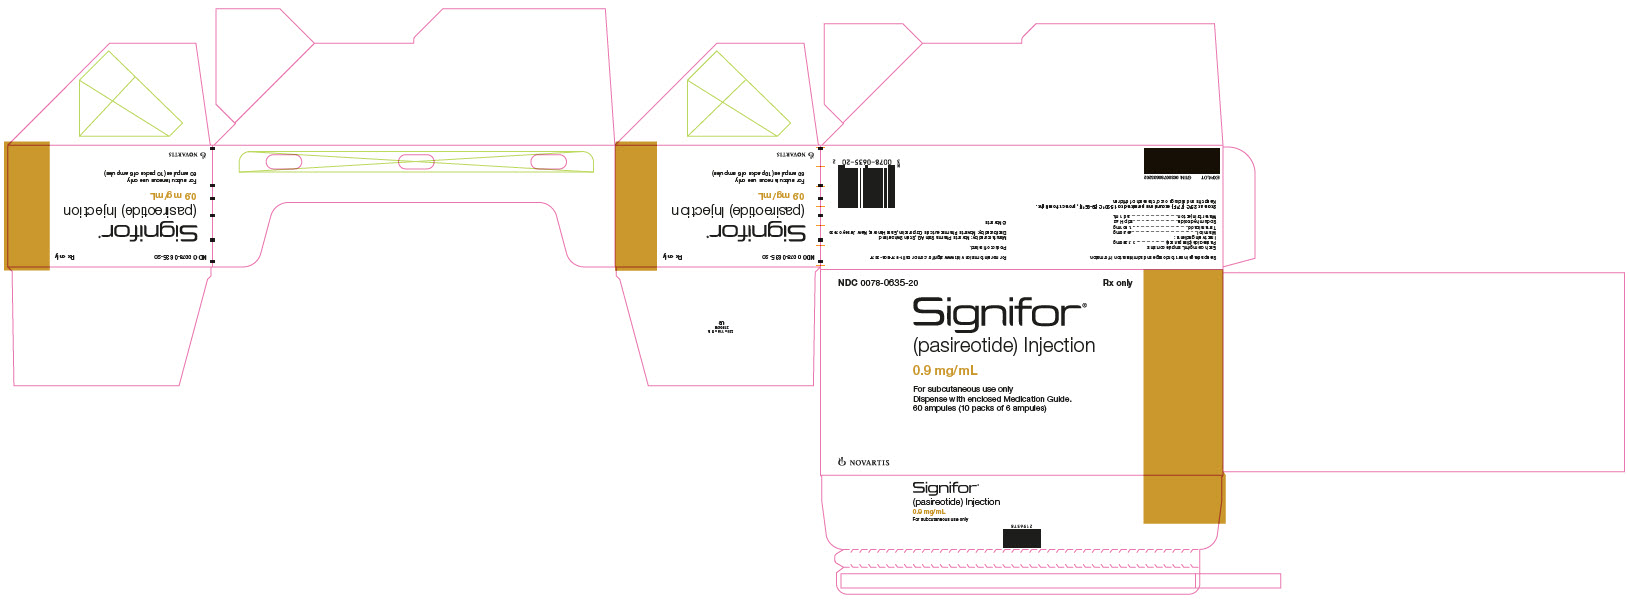 Package Label – 0.9 mg/mL Rx OnlyNDC: <a href=/NDC/0078-0635-20>0078-0635-20</a> Signifor®  (pasireotide) Injection 0.9 mg/mL For subcutaneous use only Dispense with enclosed Medication Guide. 60 ampules (10 packs of 6 ampules)